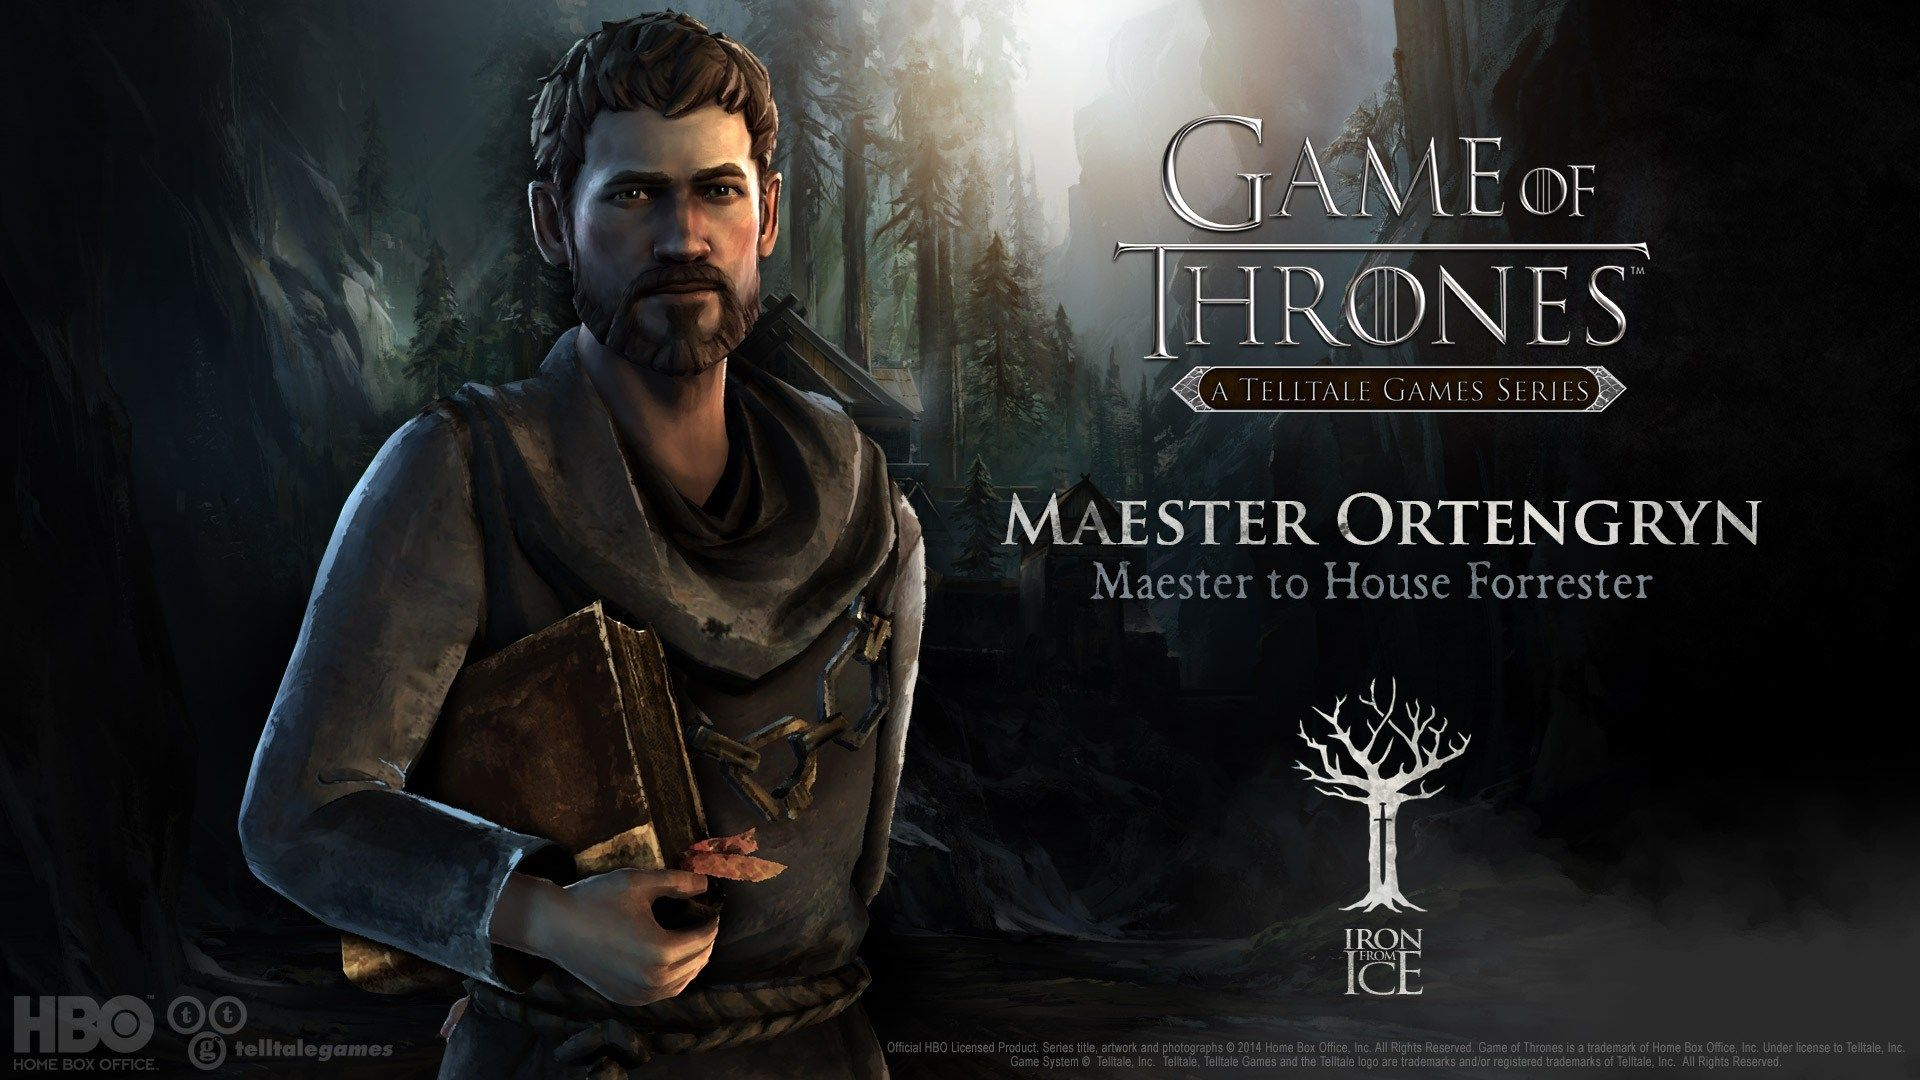 Widescreen Wallpapers Game Of Thrones A Telltale Games Series Wallpaper Game Of Thrones A Telltale Game Of Thrones Maester Game Of Thrones Telltale Games